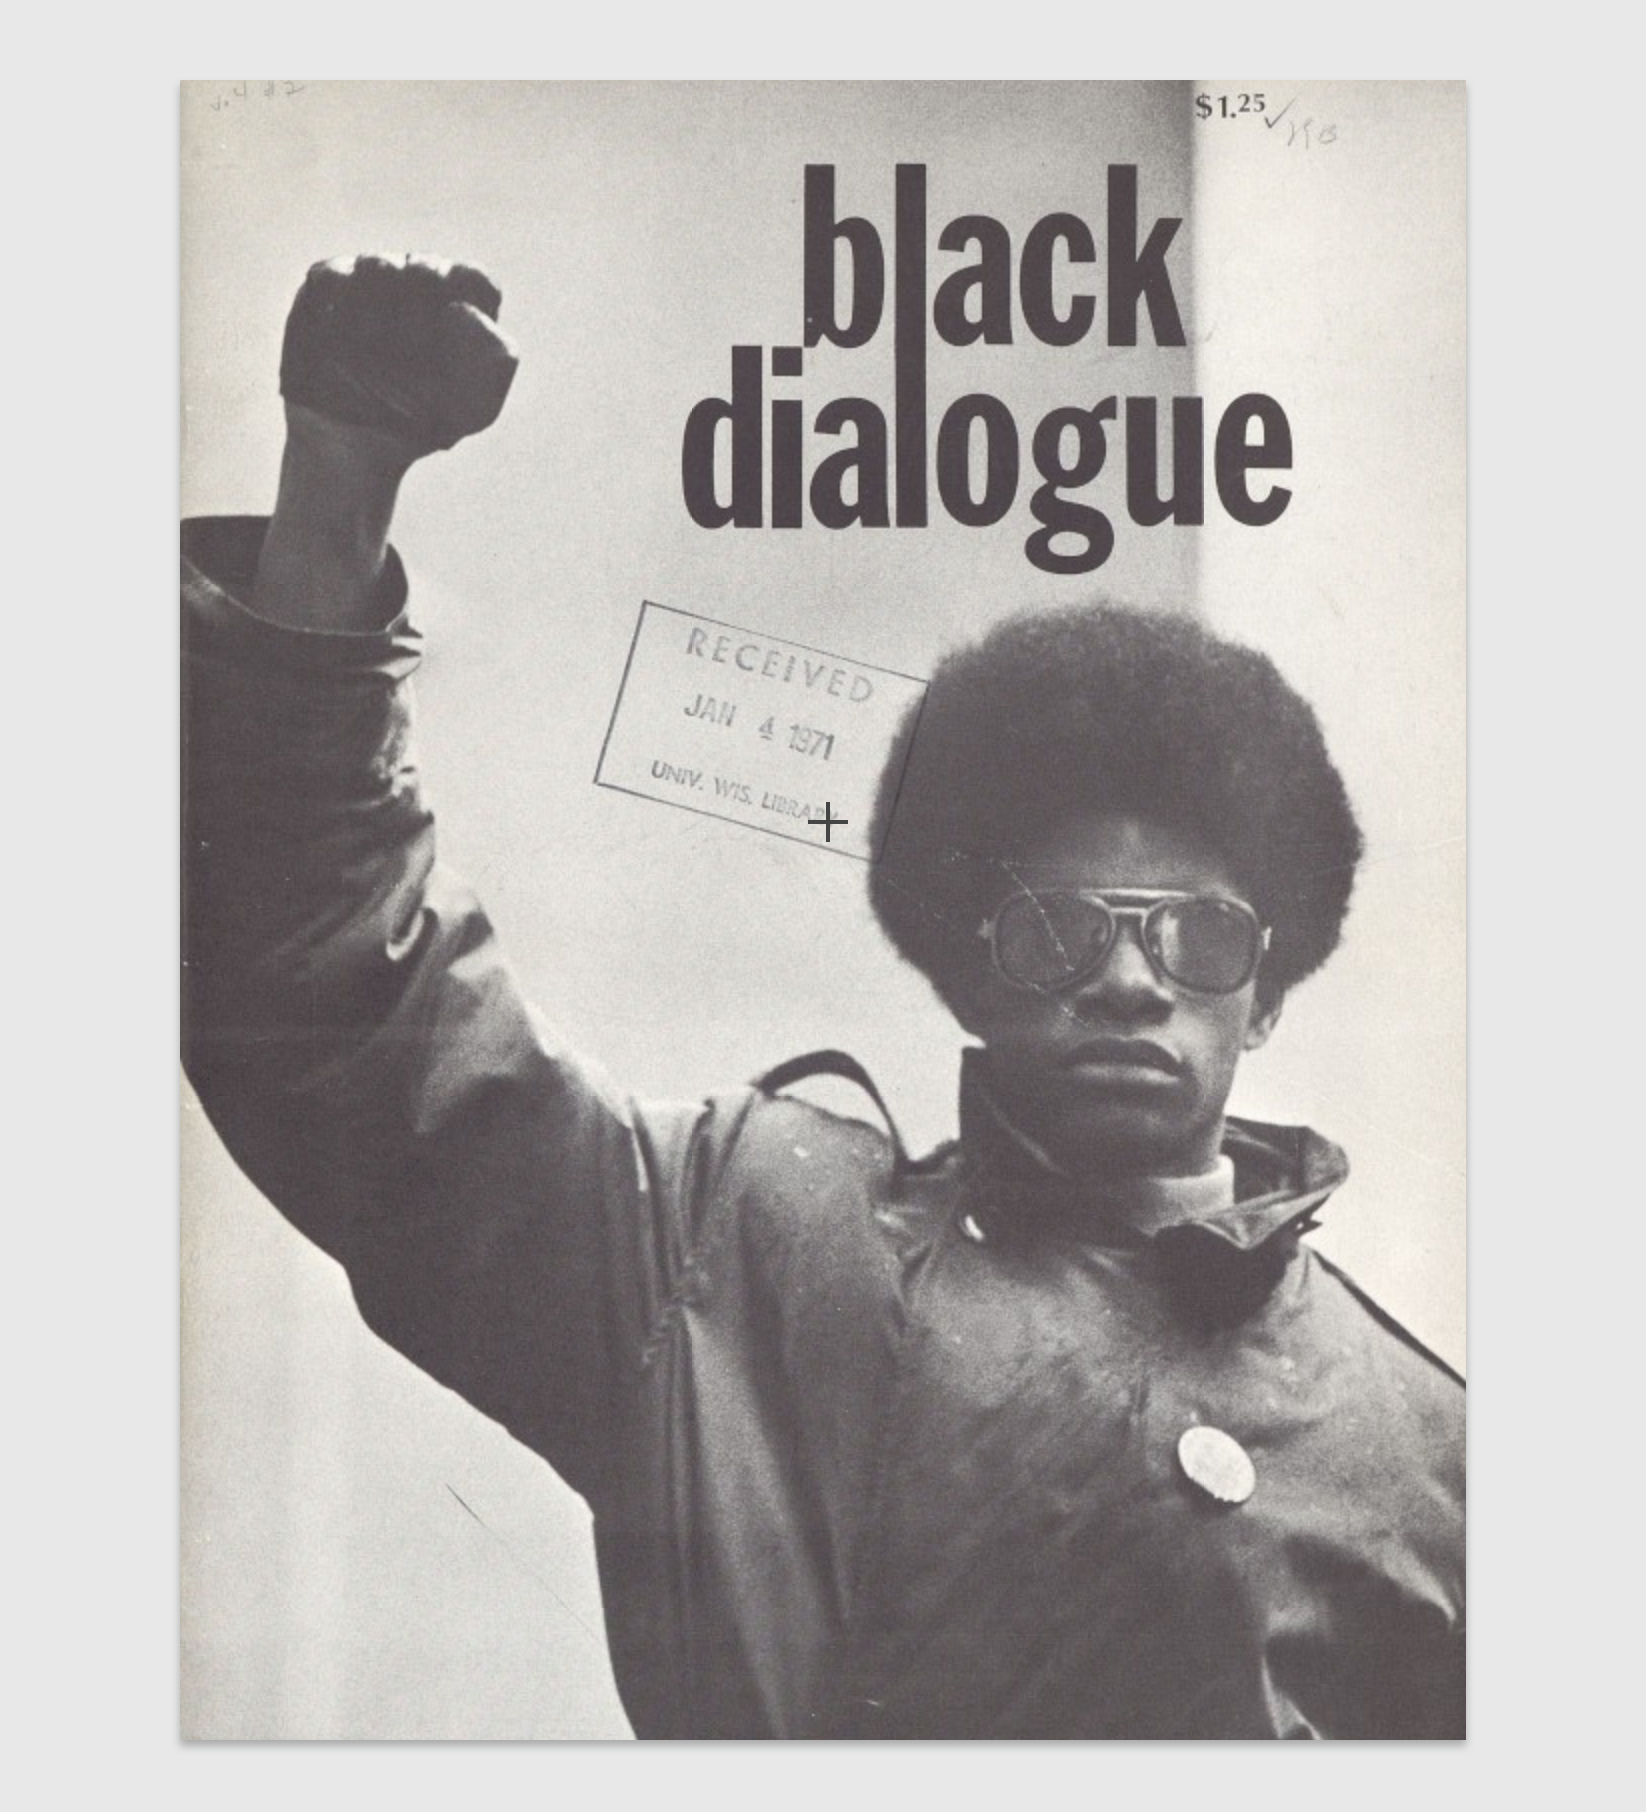 The cover of Black Dialogue Vol.4 No.2 Summer 1970